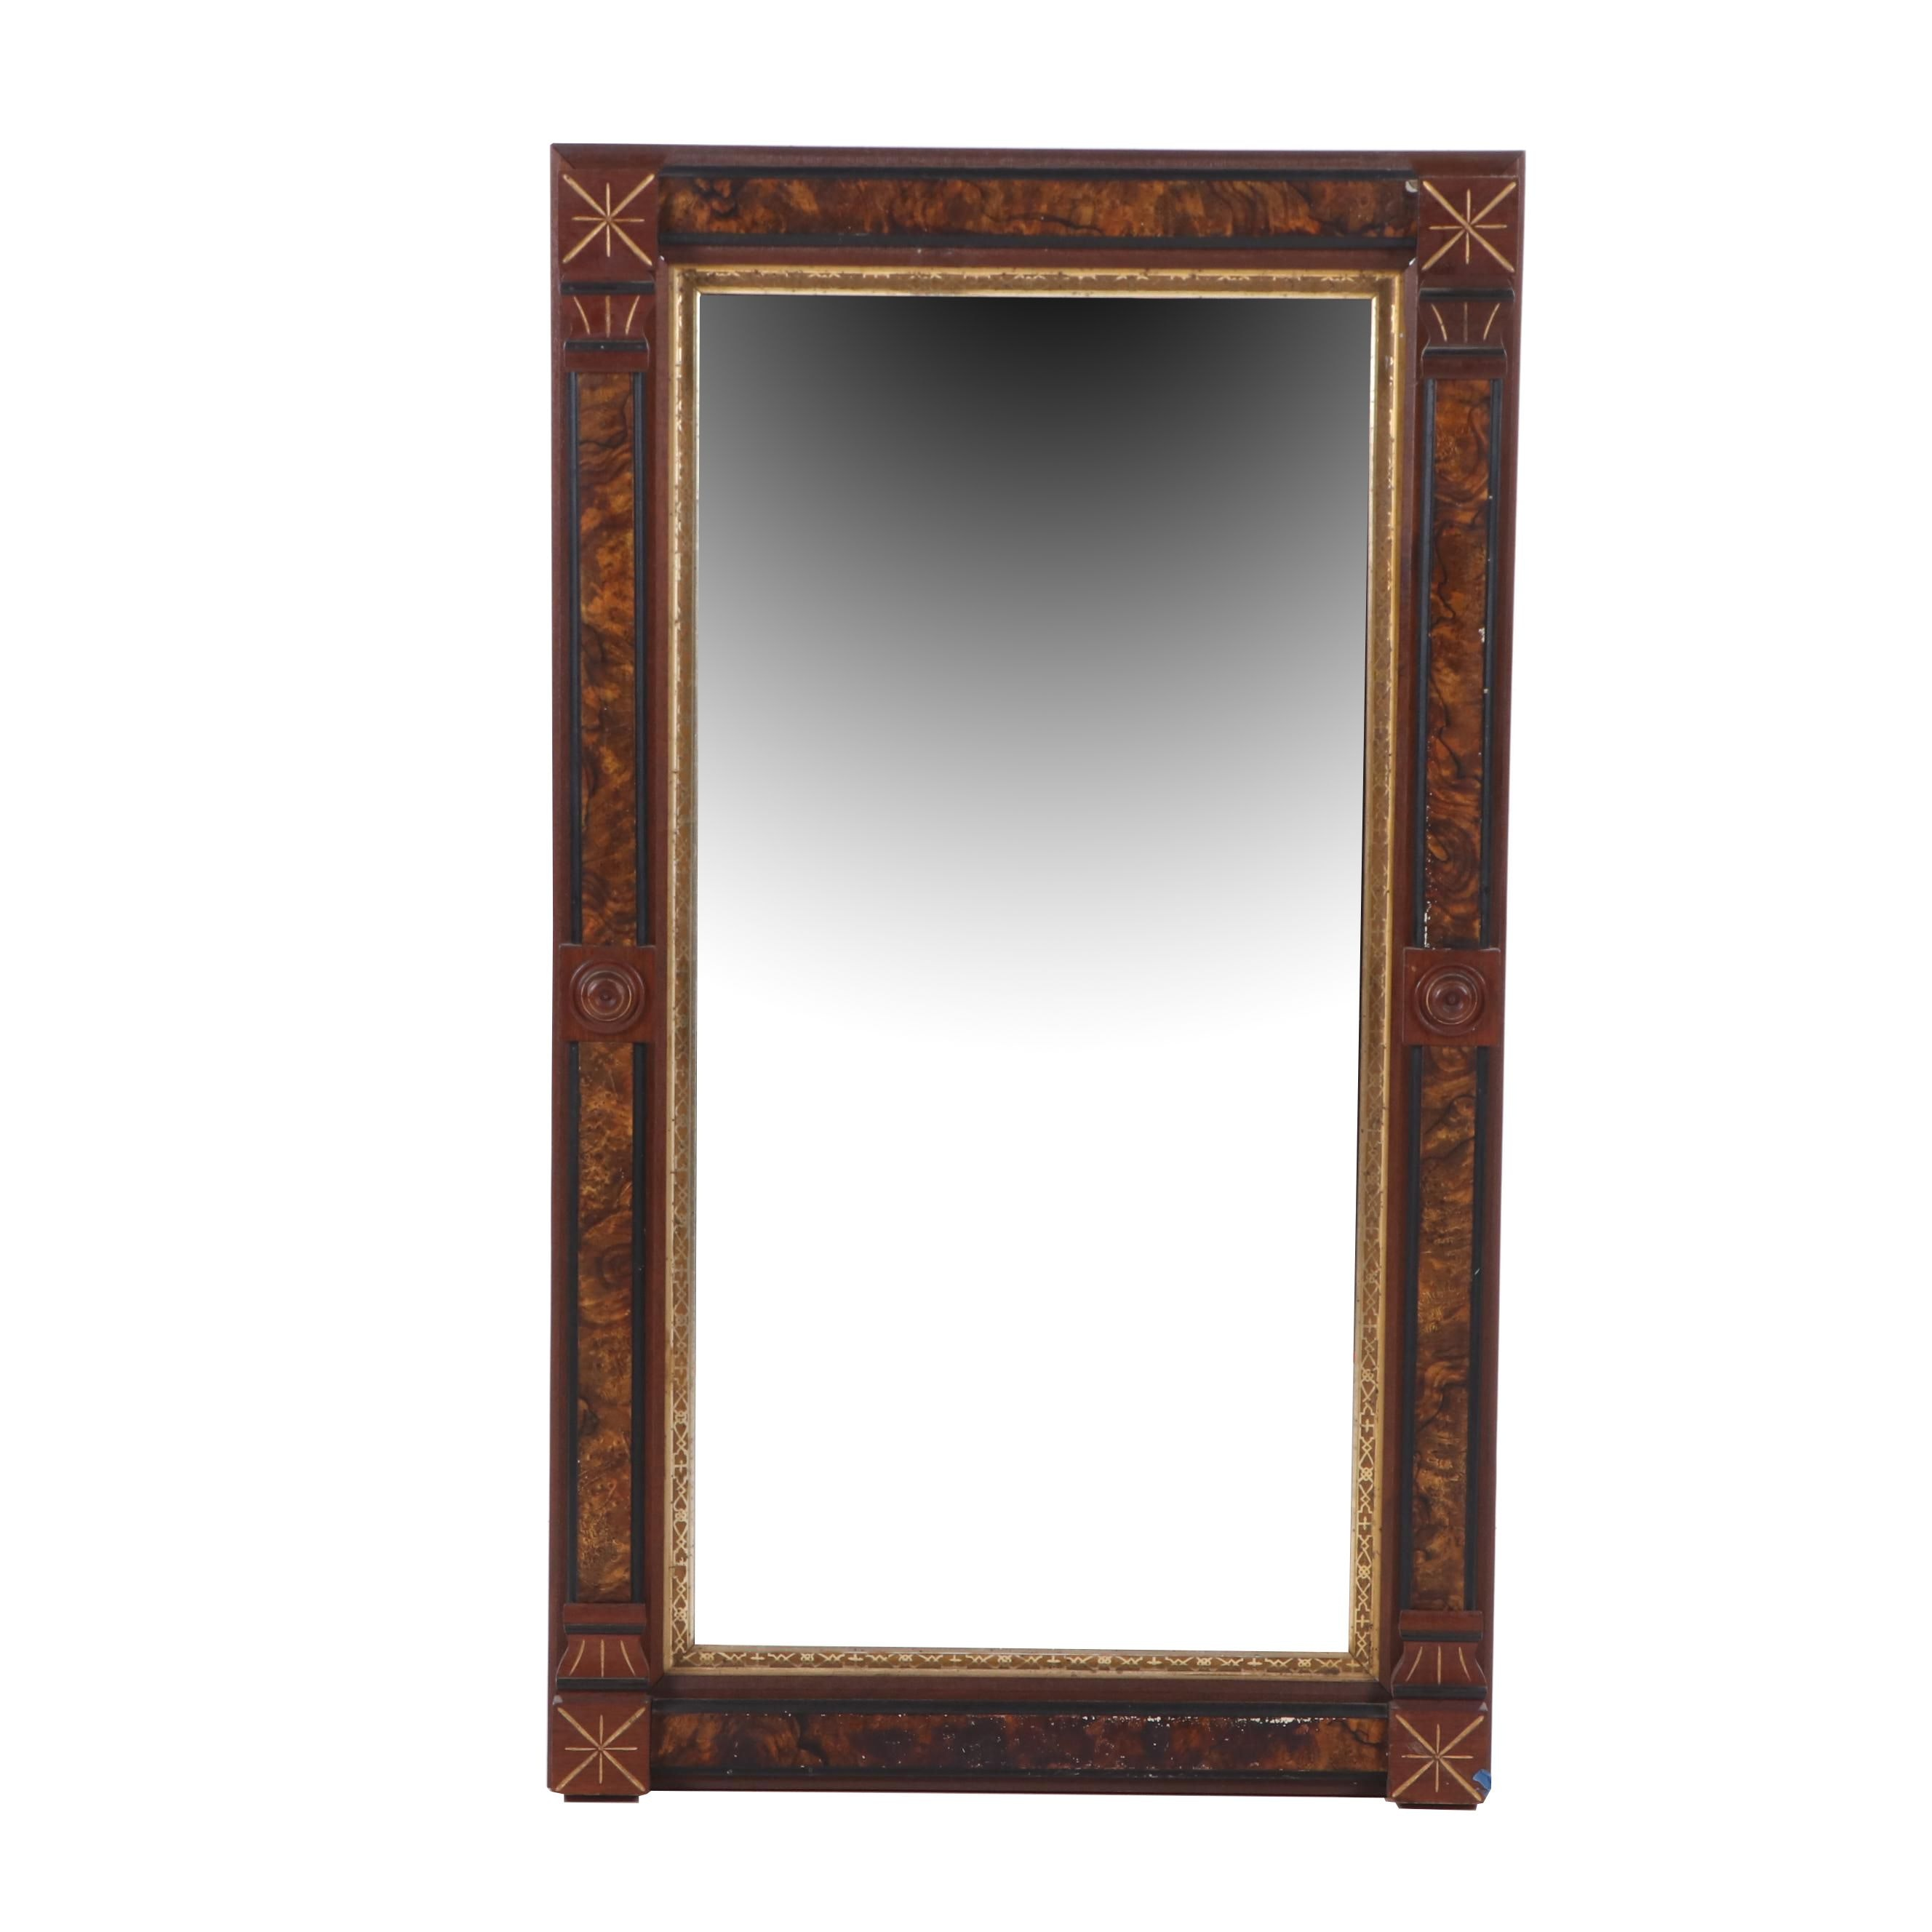 Victorian Eastlake Style Mirror with Gilt Trim and Faux Bois Effect